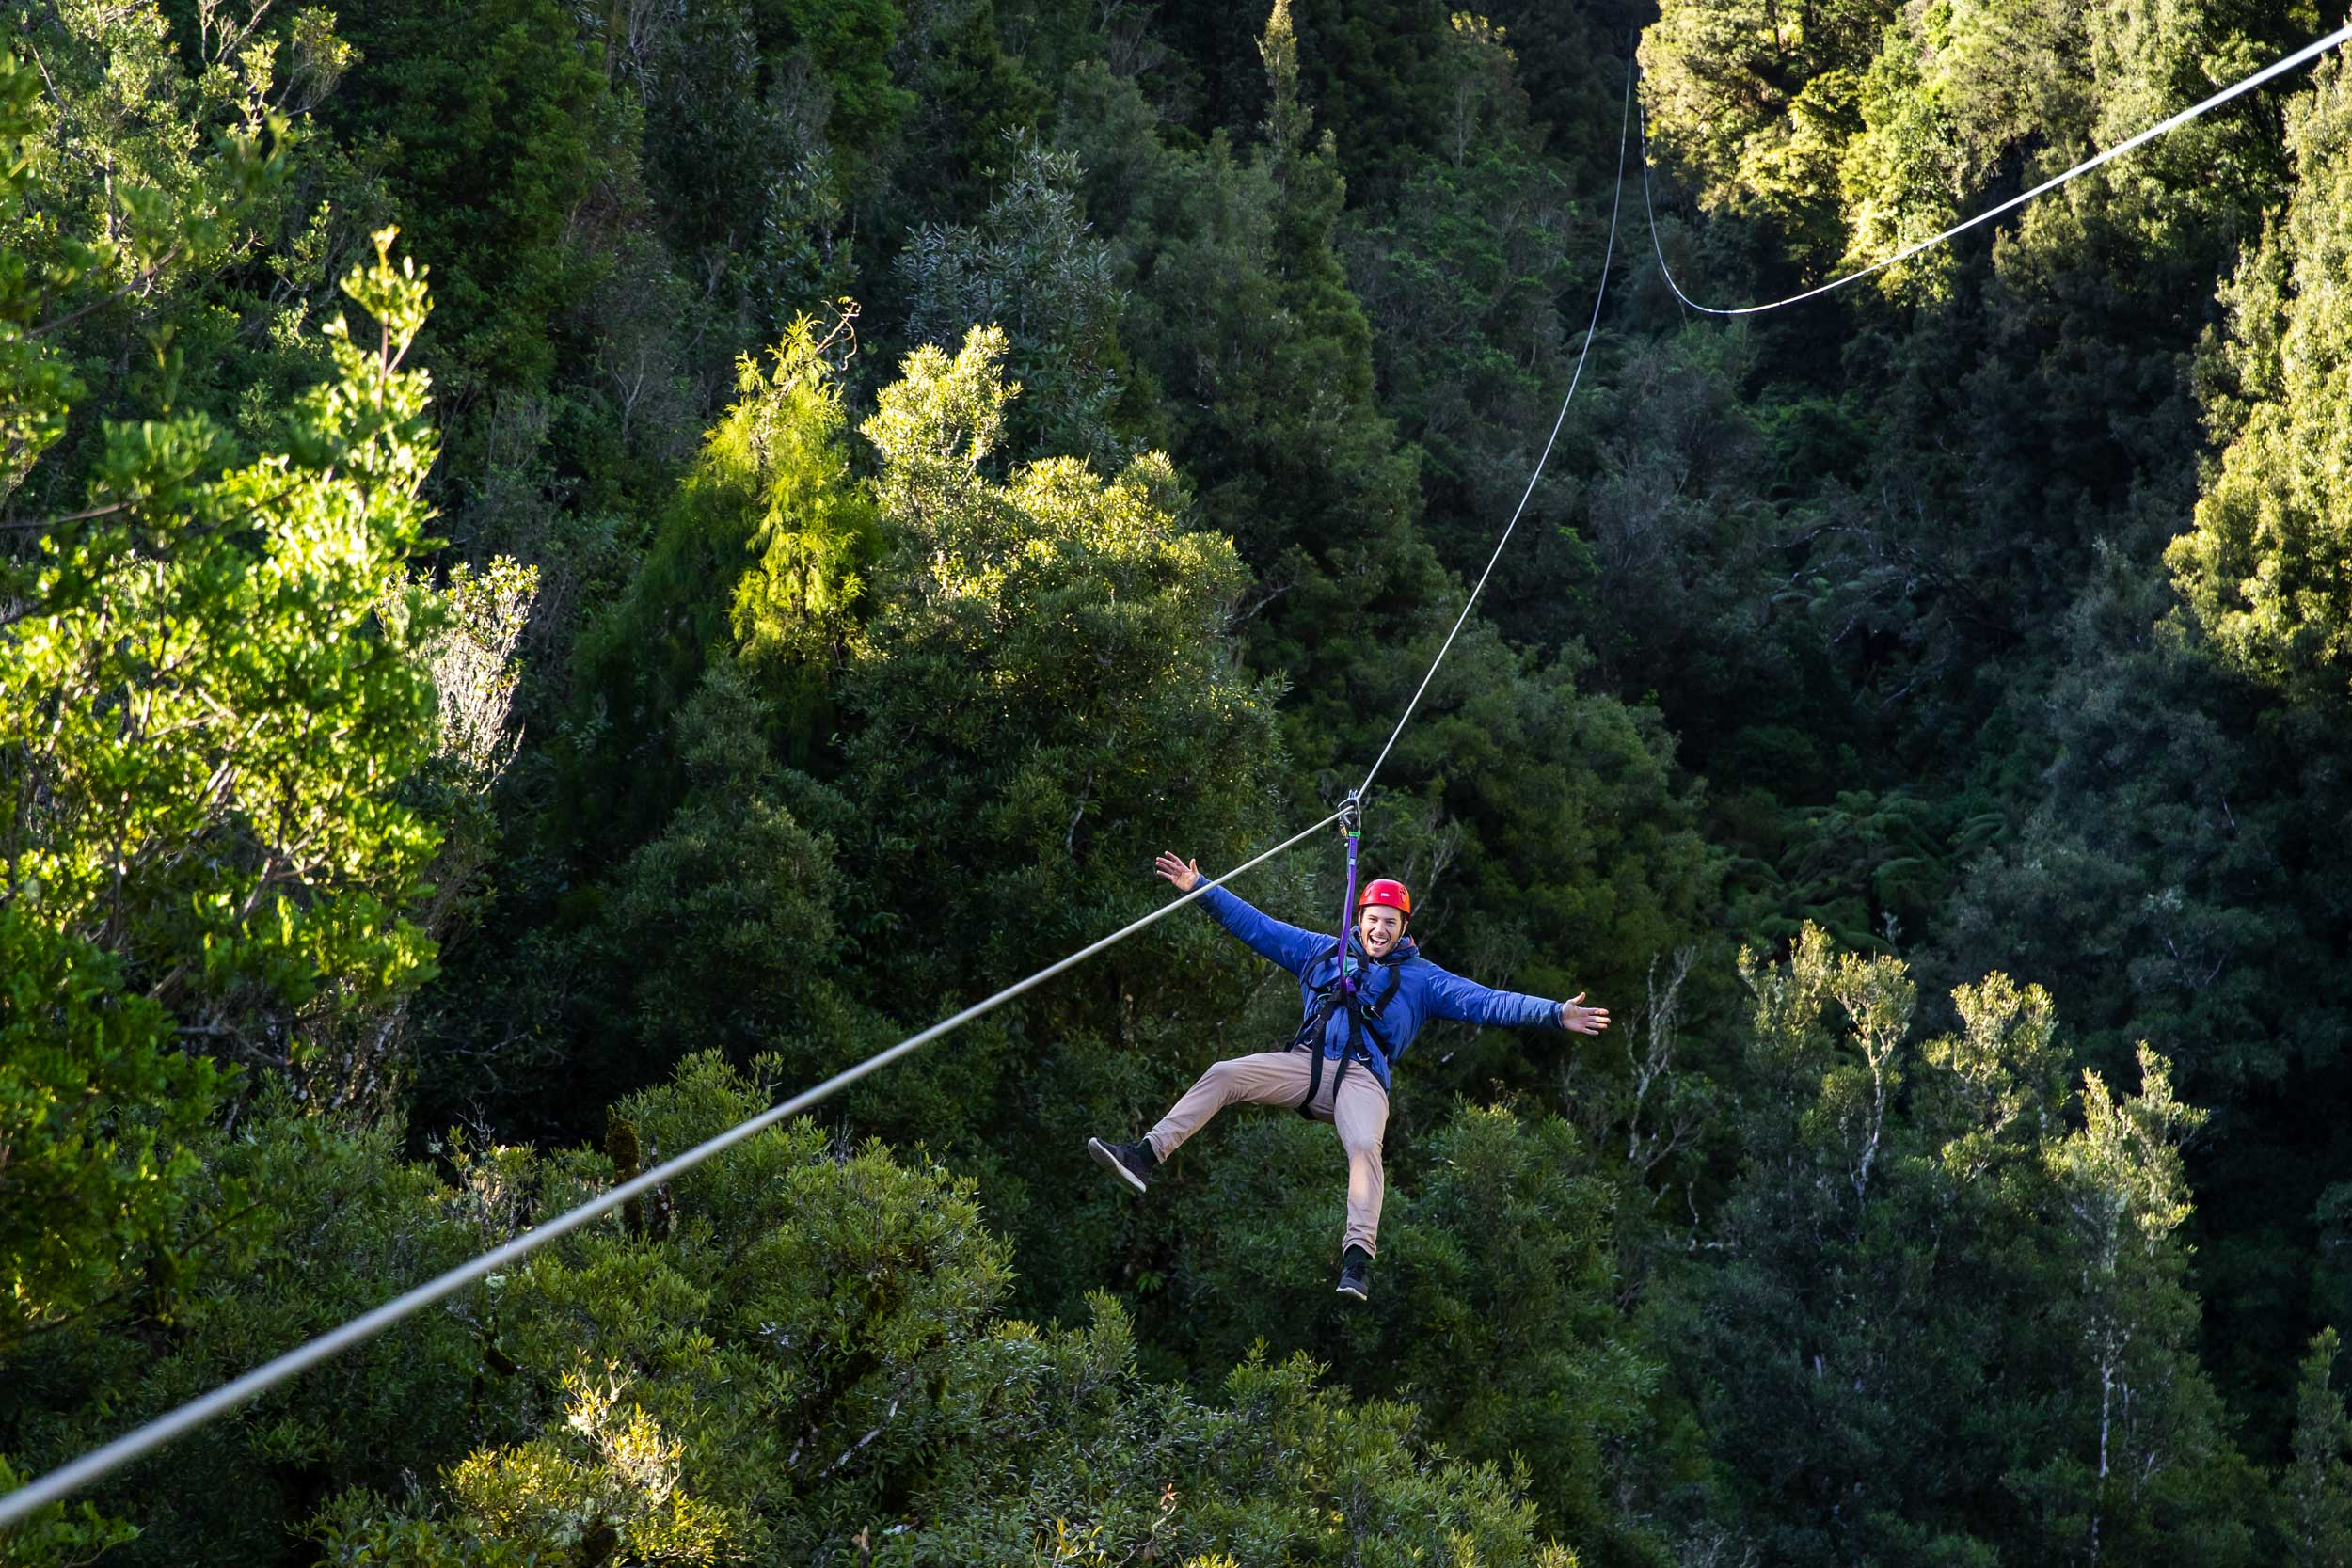 Man on a zipline travelling backwards over forest, Rotorua